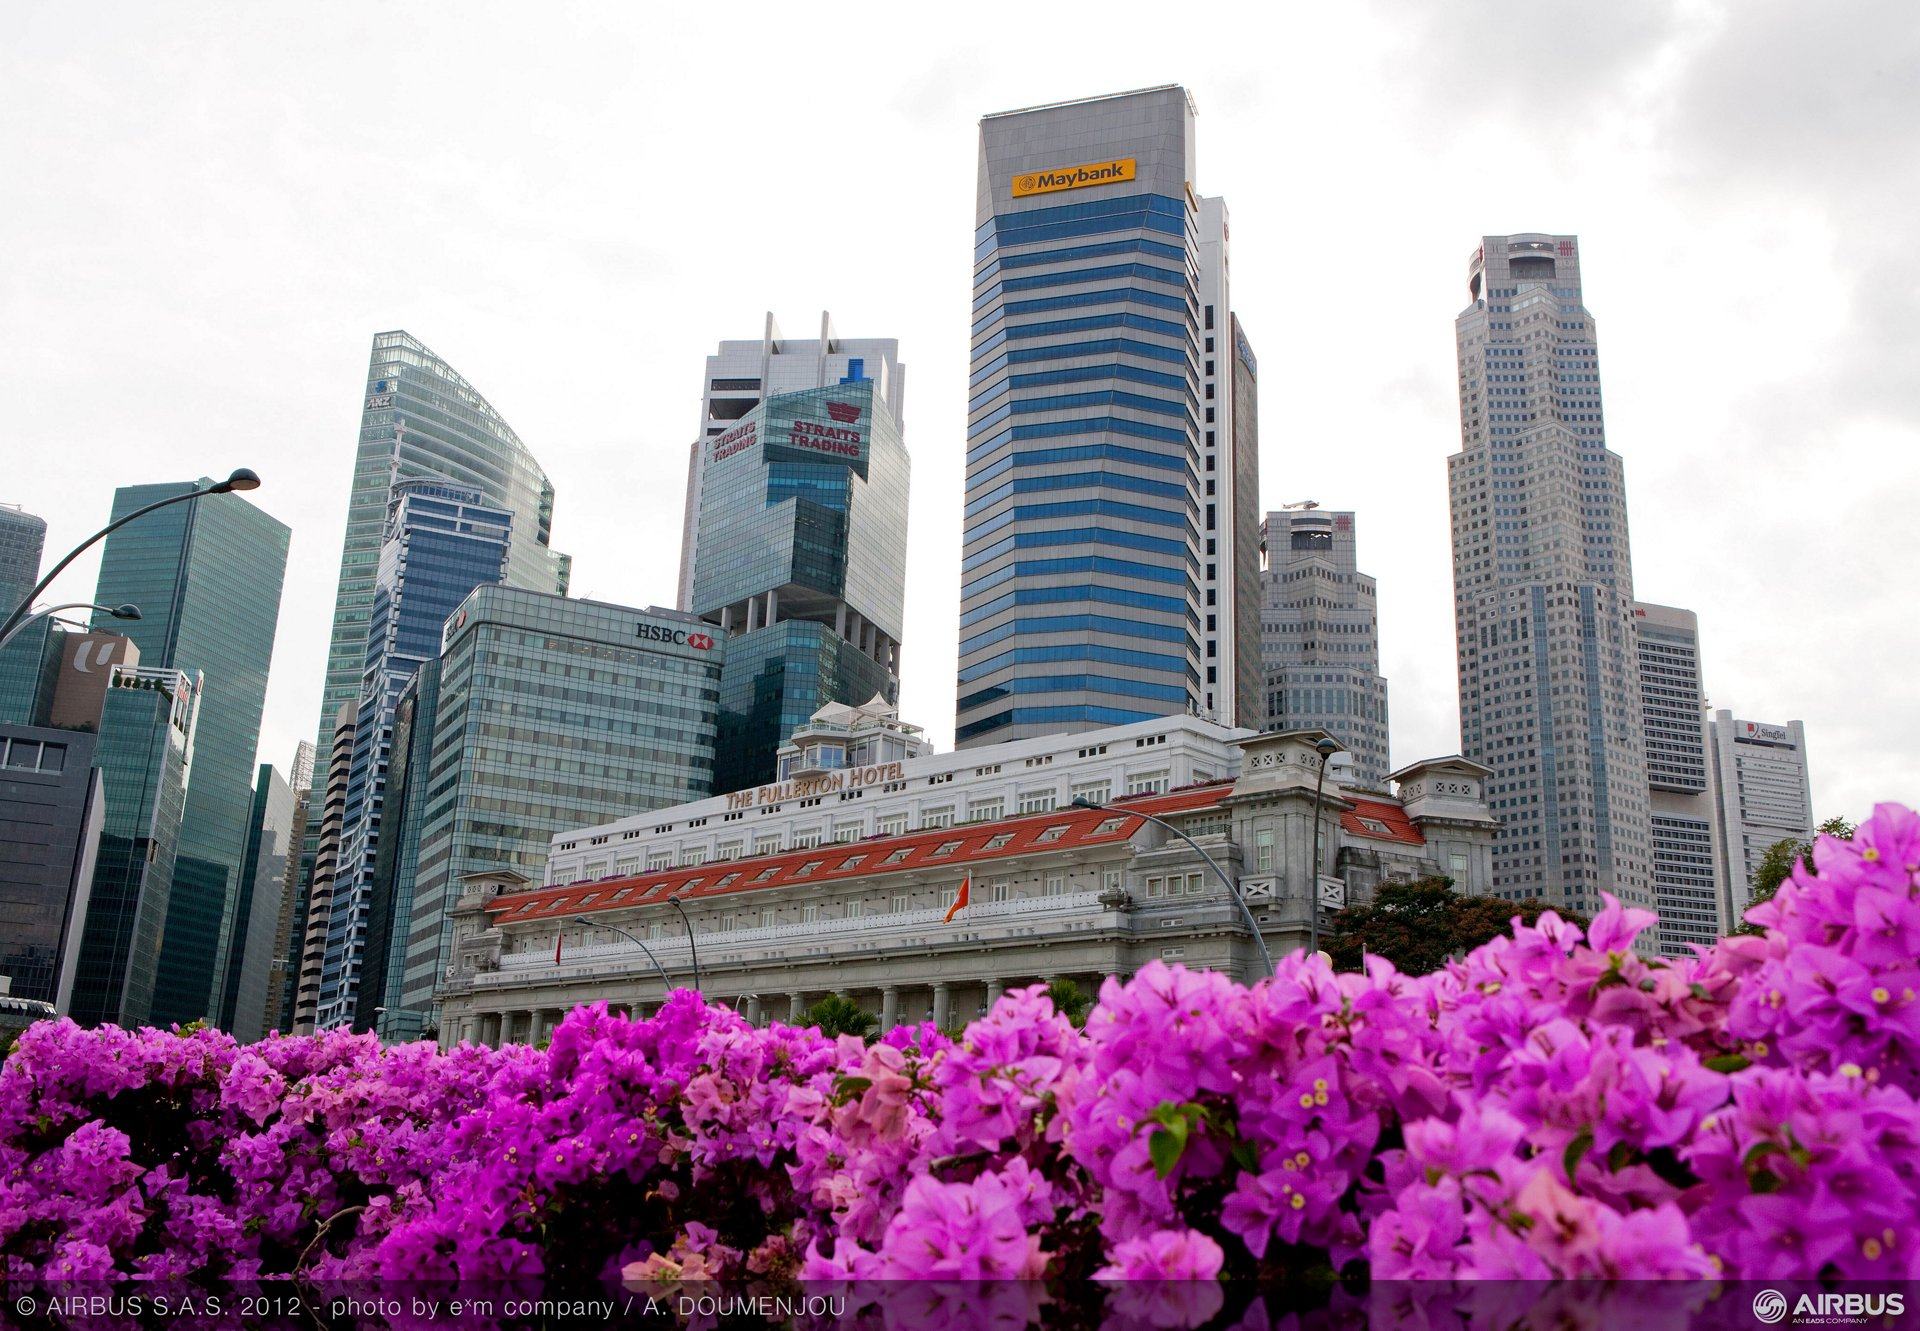 Singapore Airshow 2012 - Singapore city at a glance